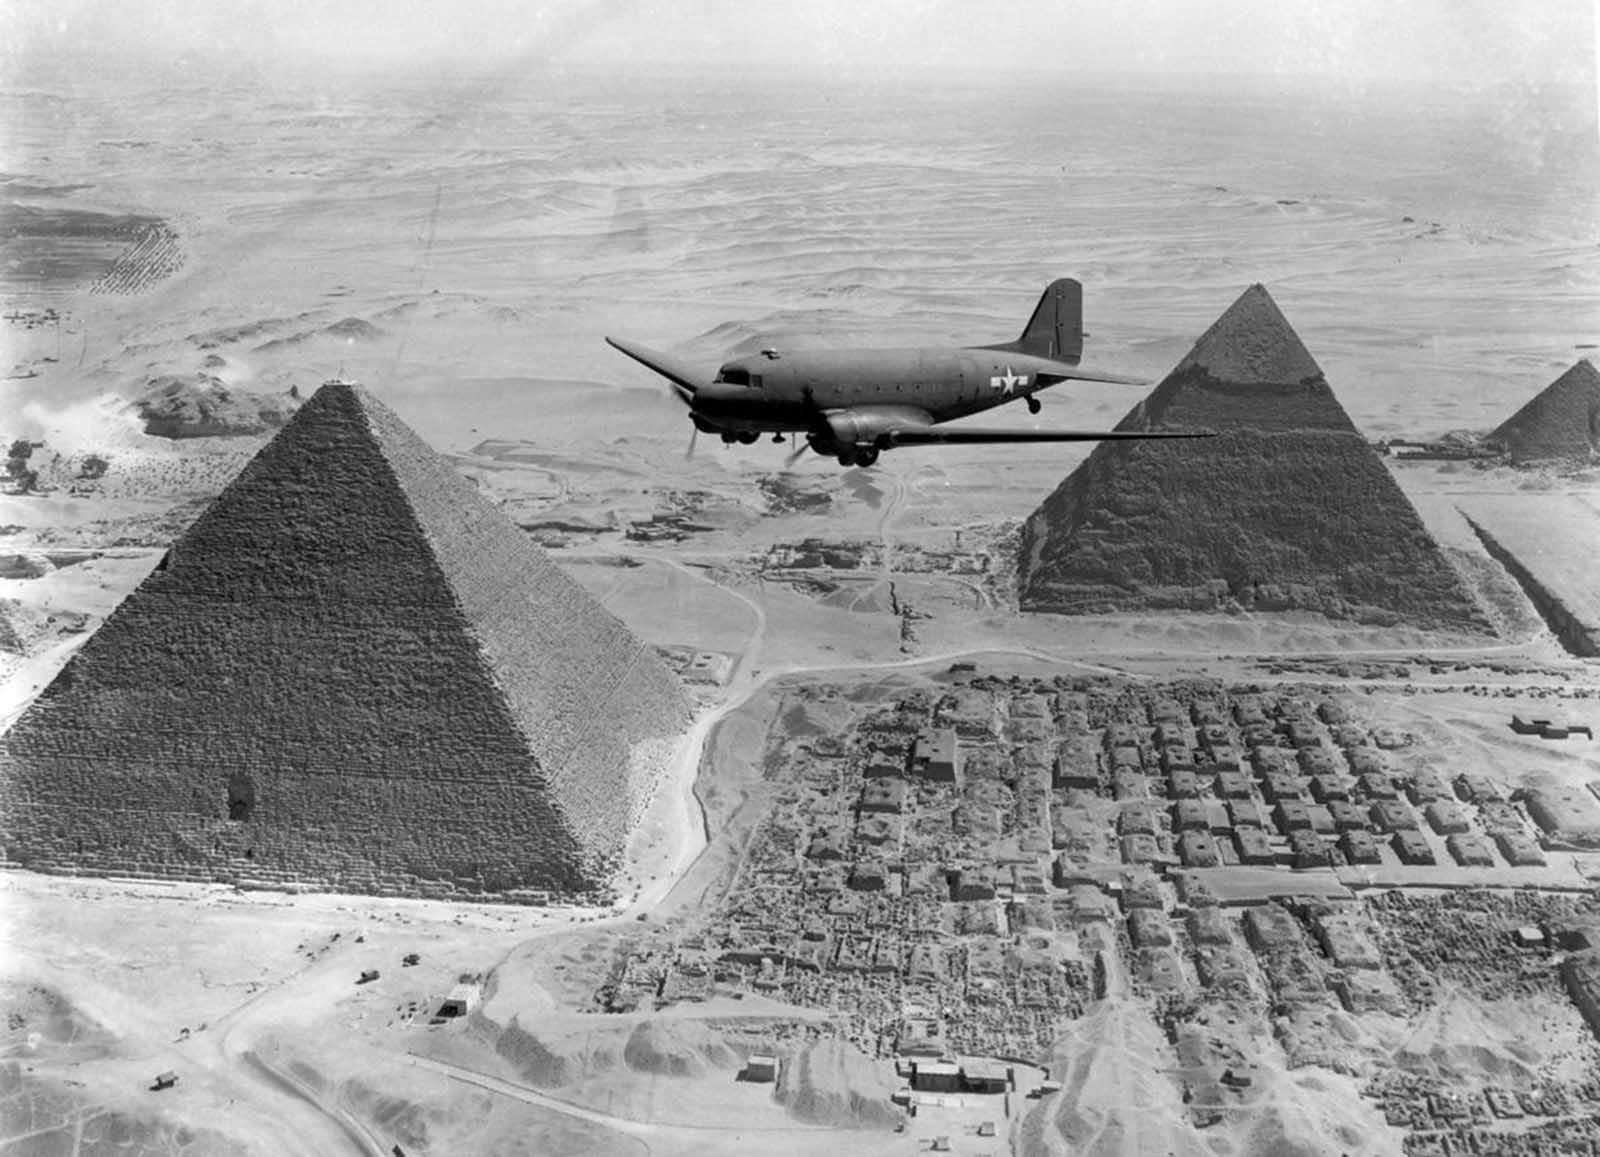 After the defeat of Axis forces in Northern Africa, Allied troops prepared to use the territory to launch attacks on Italy and other parts of southern Europe. Here, a U.S. Air Transport Command plane, loaded with war supplies, flies over the pyramids at Giza, near Cairo, Egypt, in 1943.